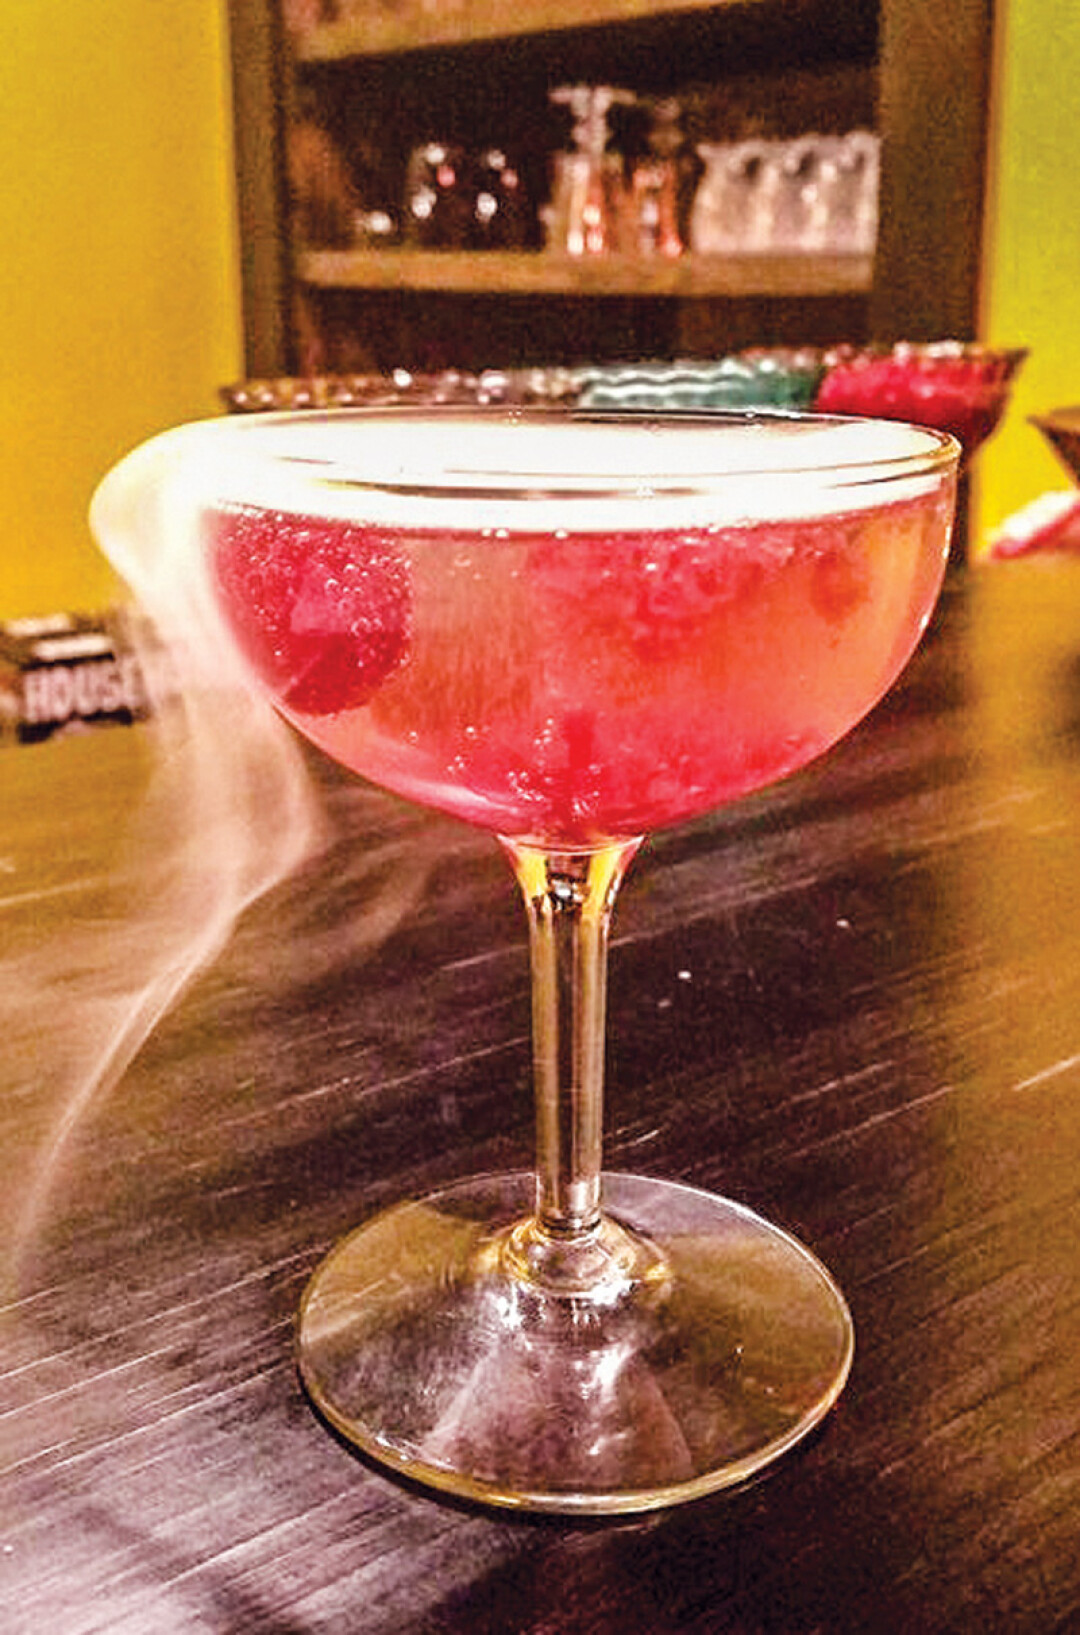 The Witches Heart Cocktail at Stacked in Menomonie.